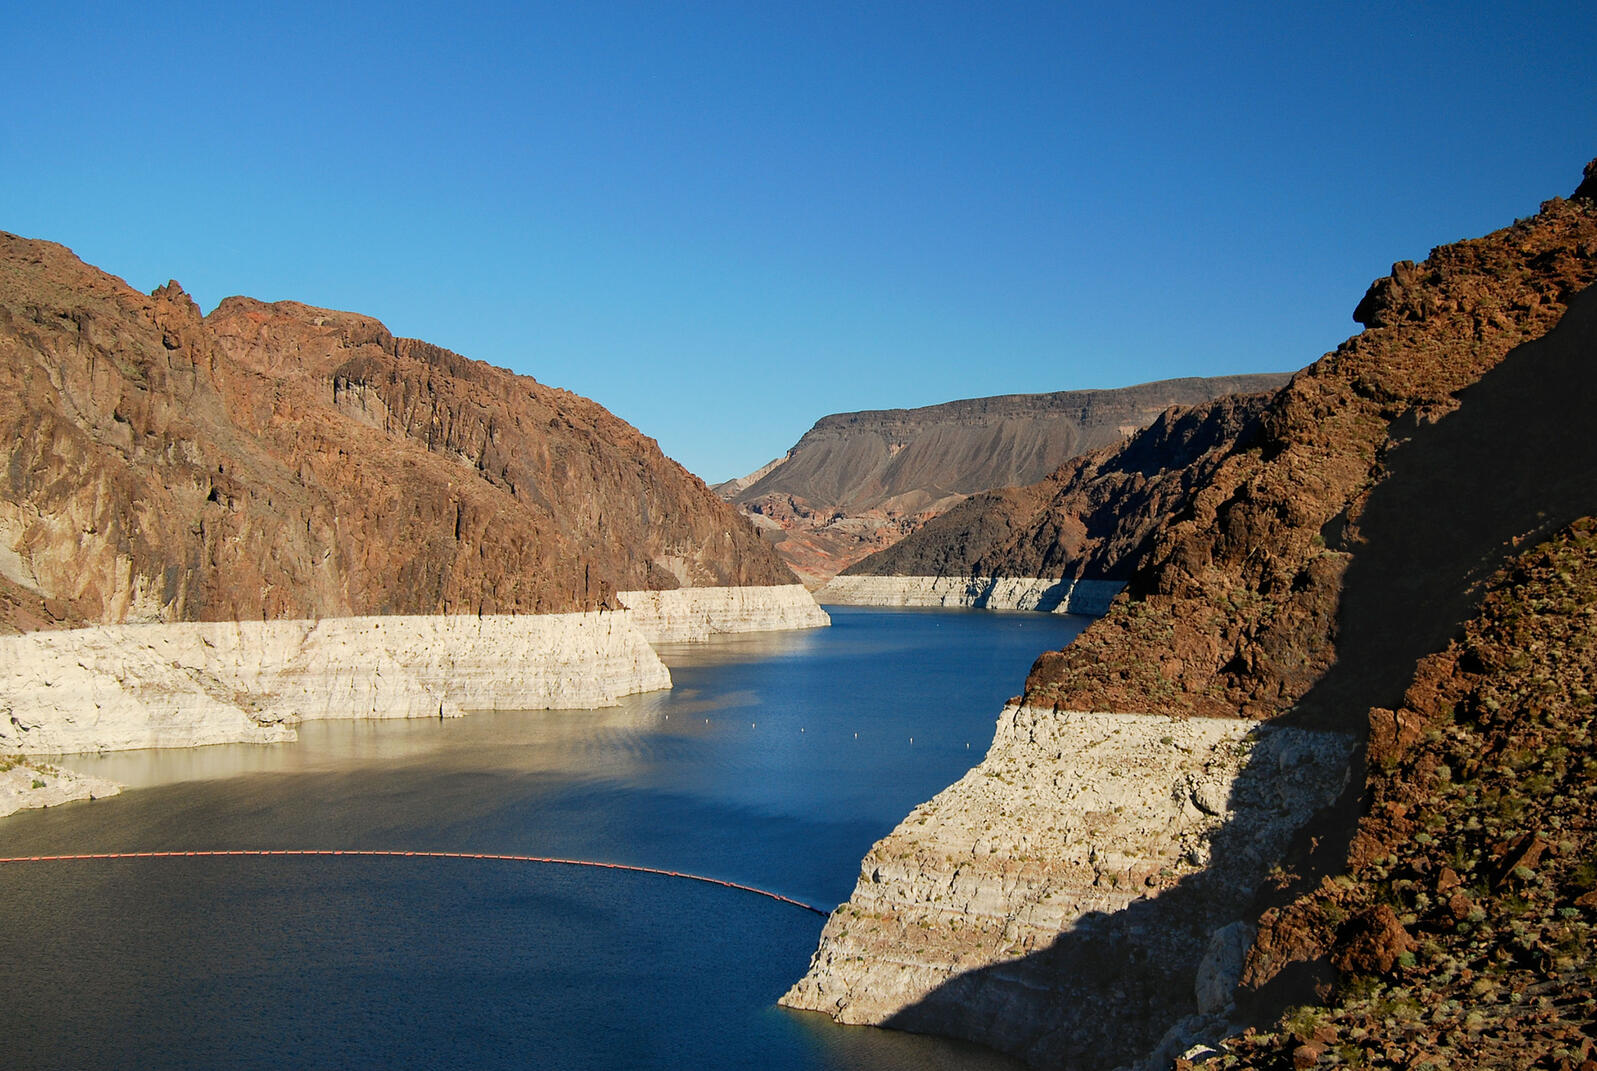 """Lake Mead. <a href=""""https://www.flickr.com/photos/dougbutchy/5206728636/"""">Doug Butchy</a>/Flickr (CC BY-NC-ND 2.0)"""